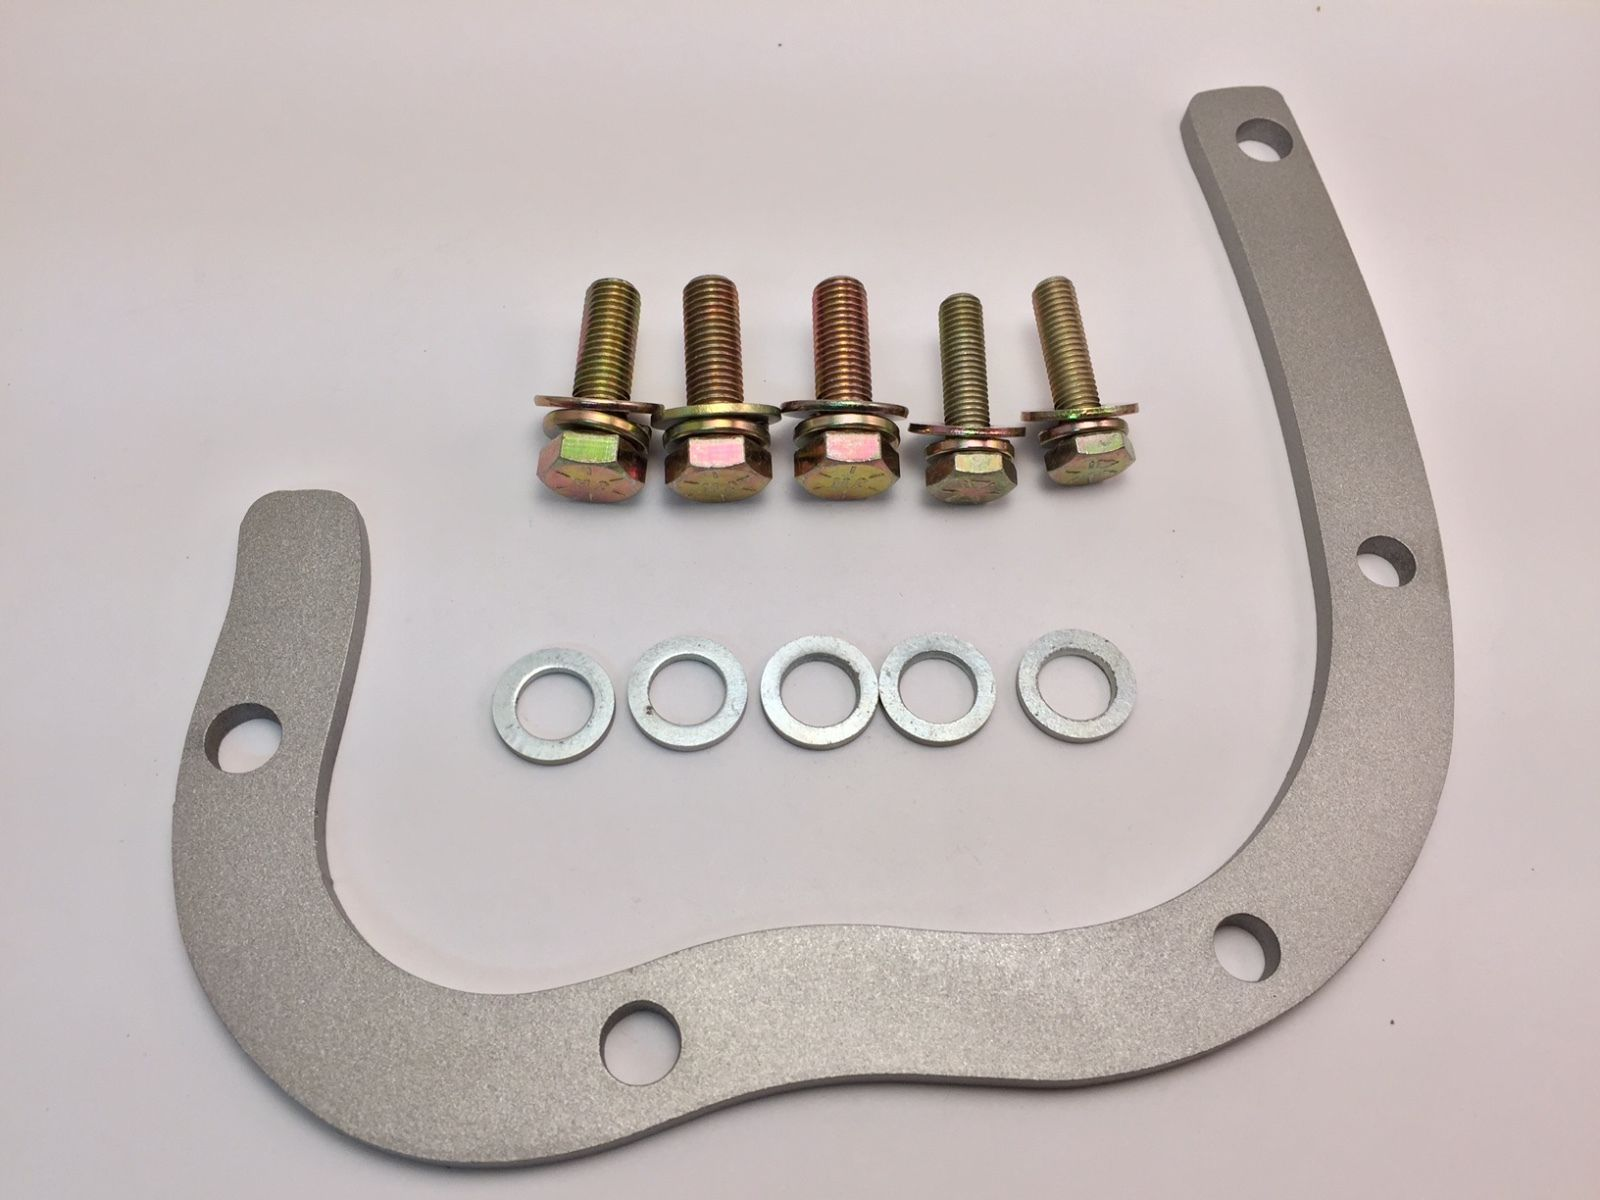 https://www.britcarfixes.com/wp-content/uploads/2019/04/MGB-Timing-Chain-Cover-Reinforcement-Plate-02.jpg